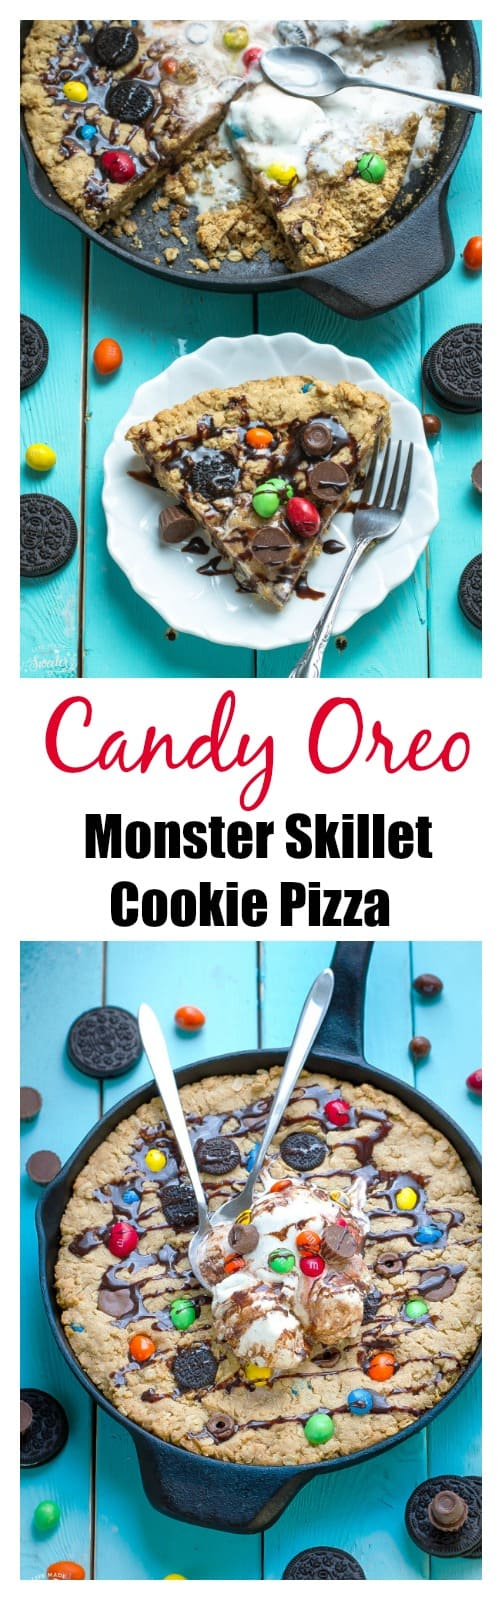 Candy Oreo Monster Skillet Cookie makes the perfect treat for using up leftover Halloween candy